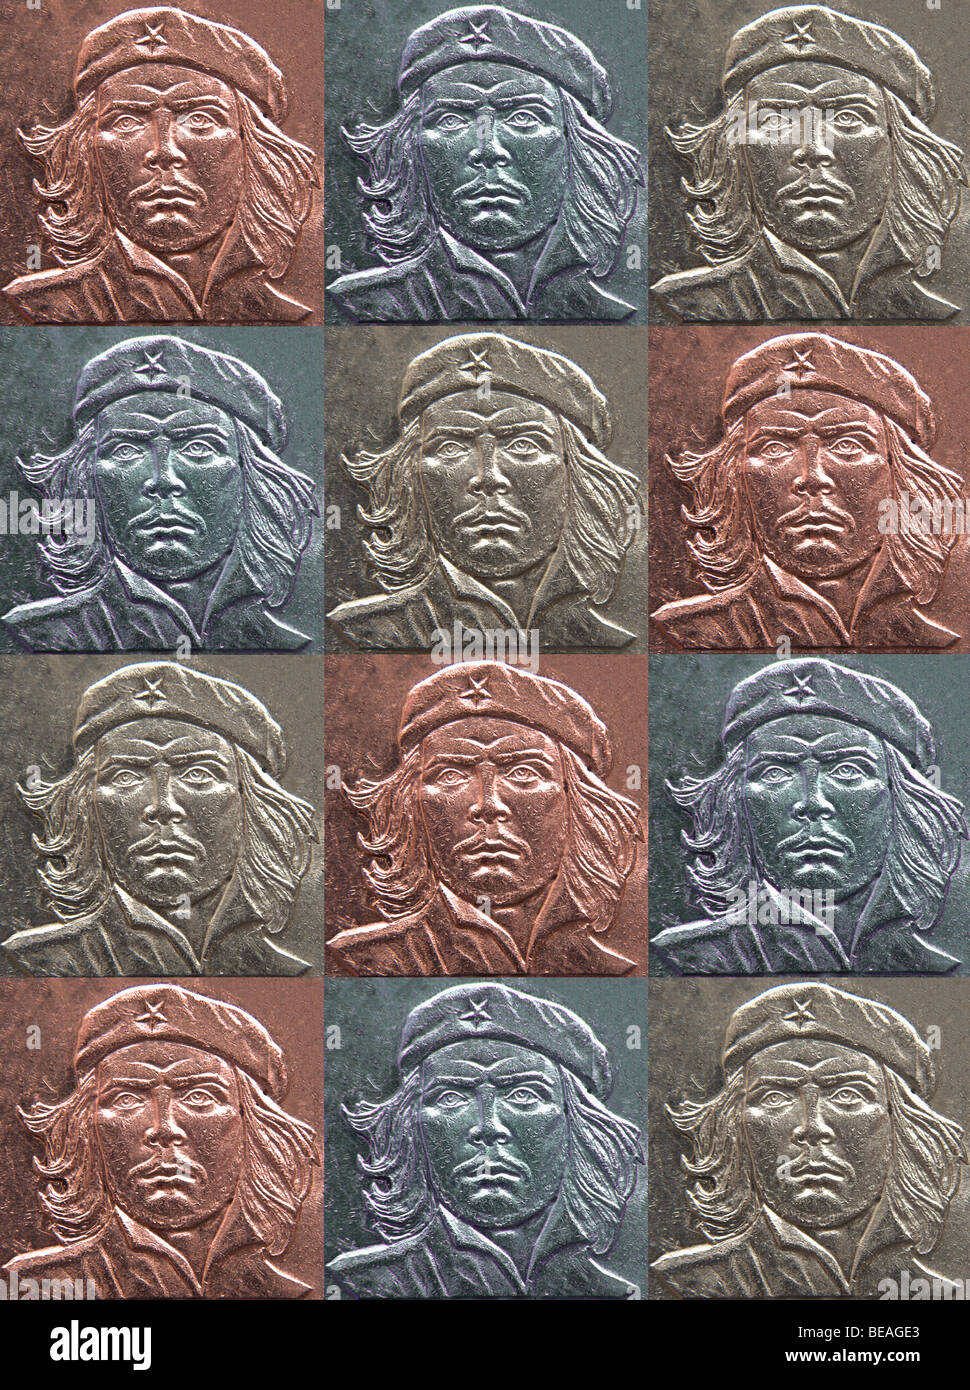 Original high resolution collage of Che Guevarra in shades of metallic red, blue and silver. By Jamie Marshall. - Stock Image